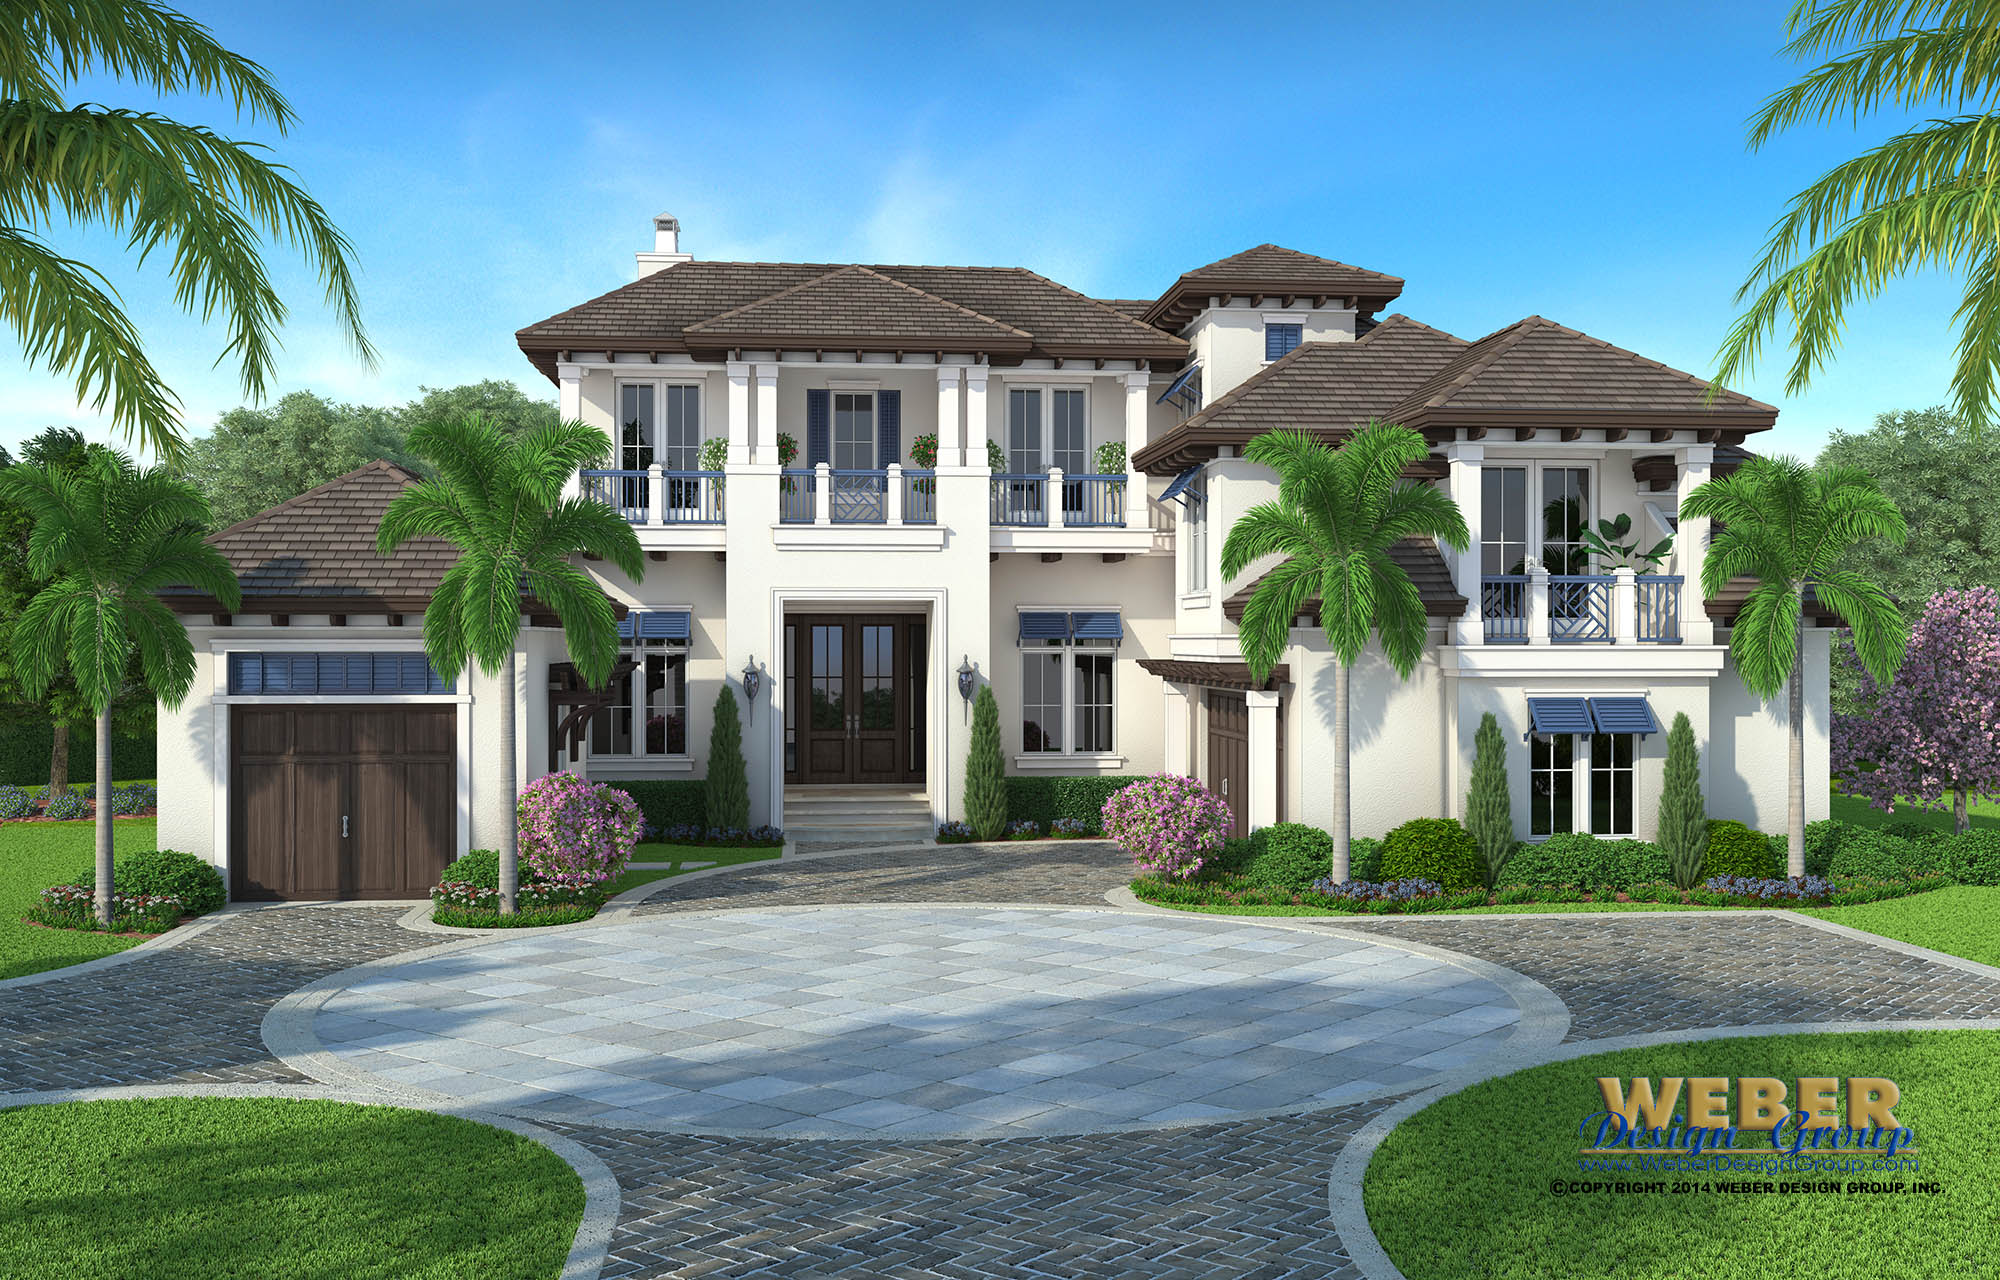 West indies house plan coastal contemporary home floor for British west indies architecture